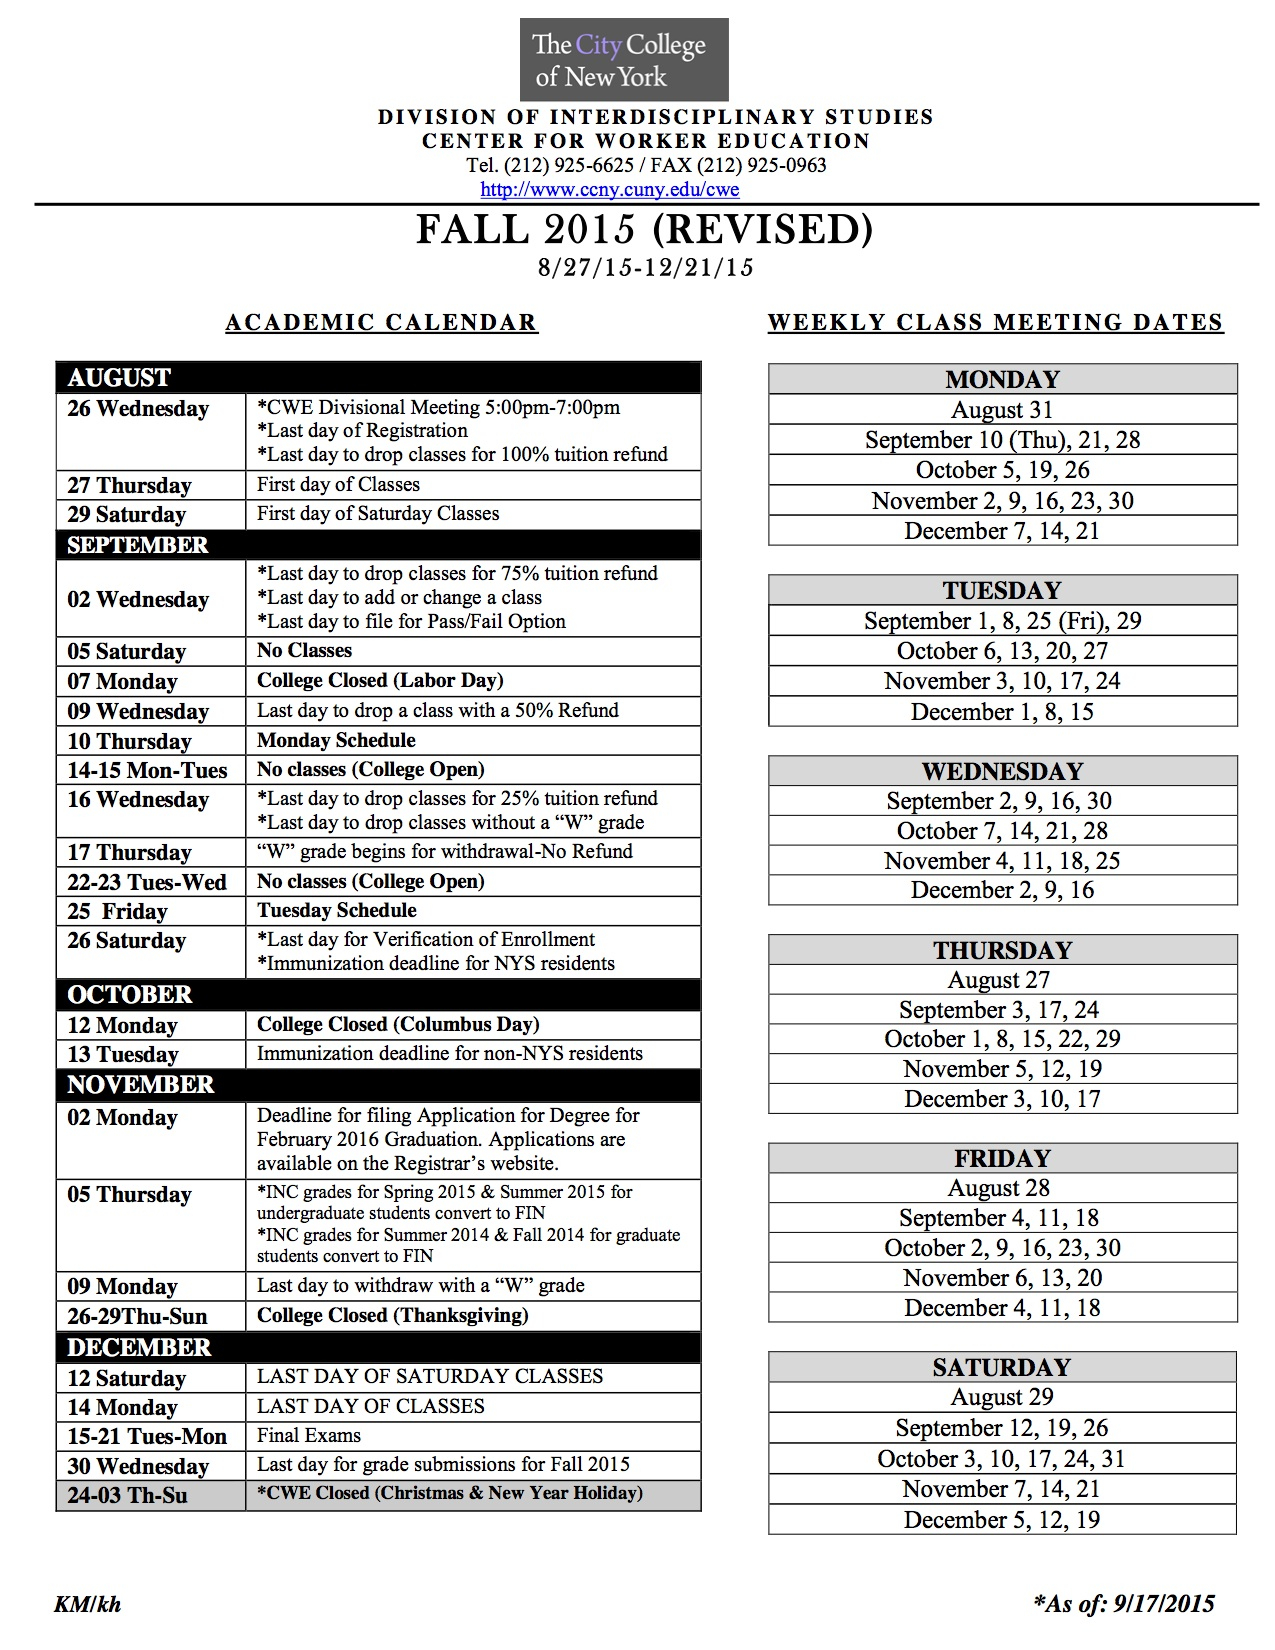 Academic Calendar | The City College Of New York Within Suffolk Community College Academic Calendar